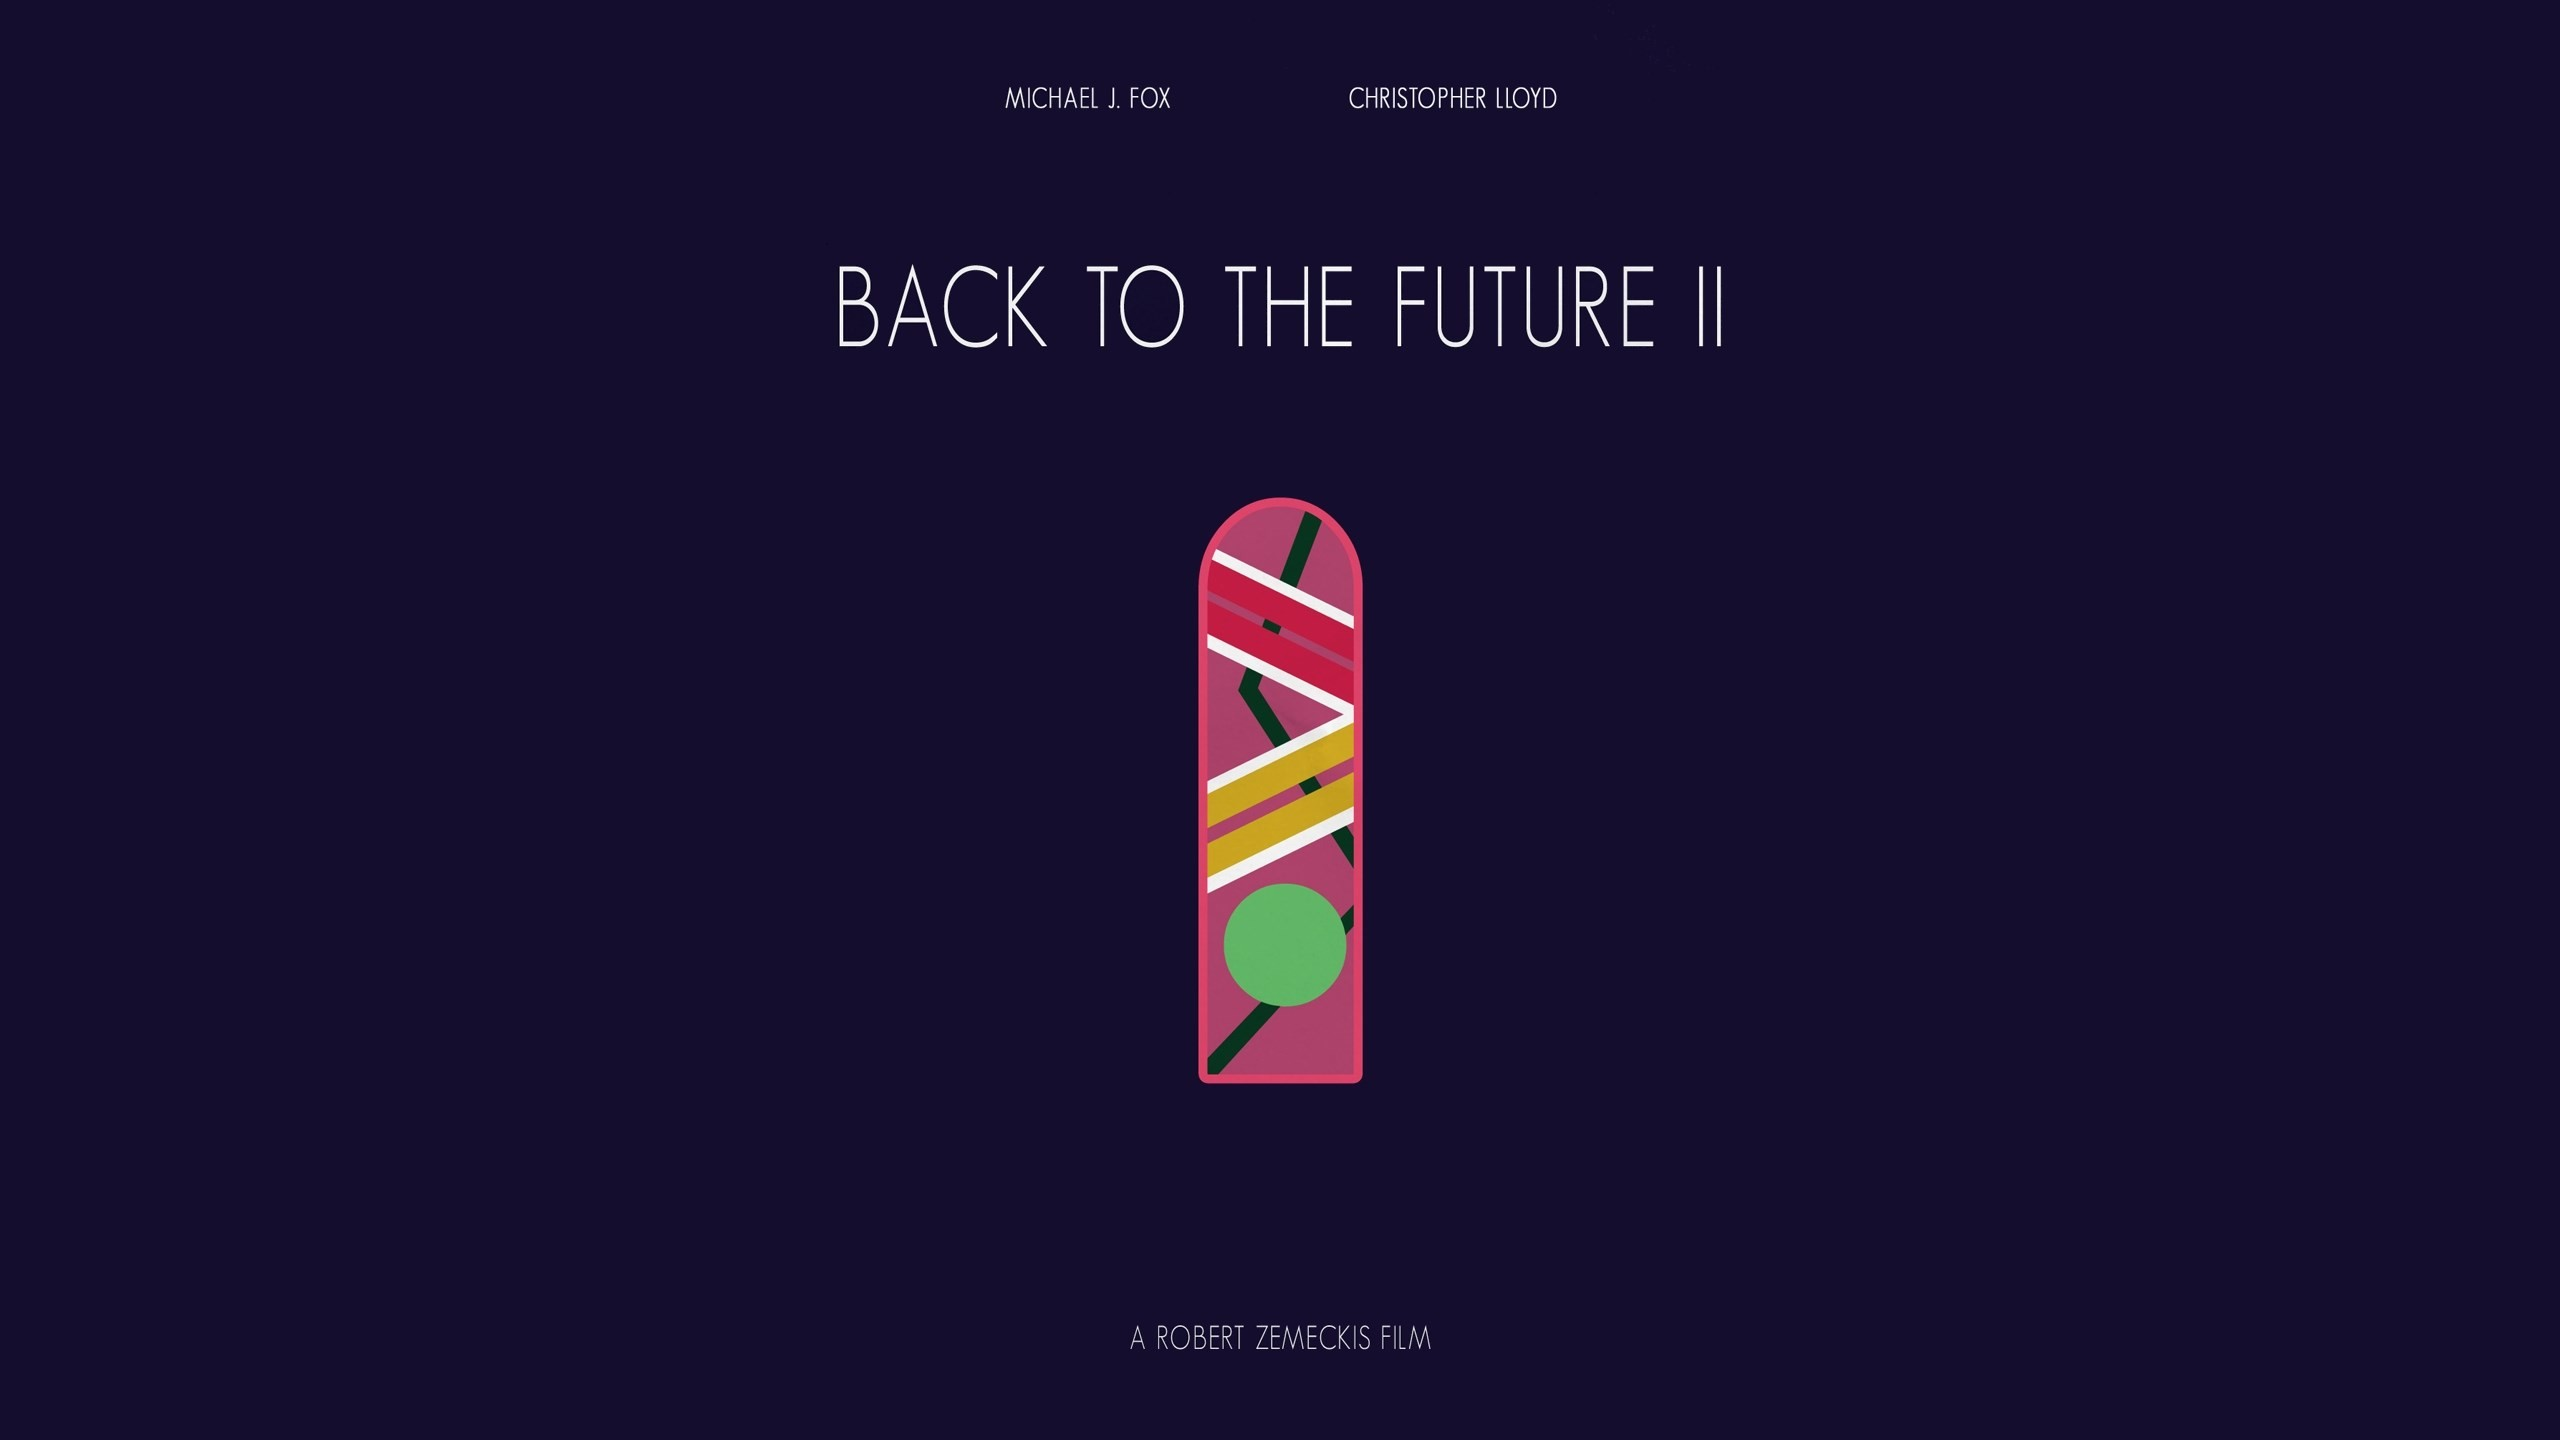 back to the future full movie hd download